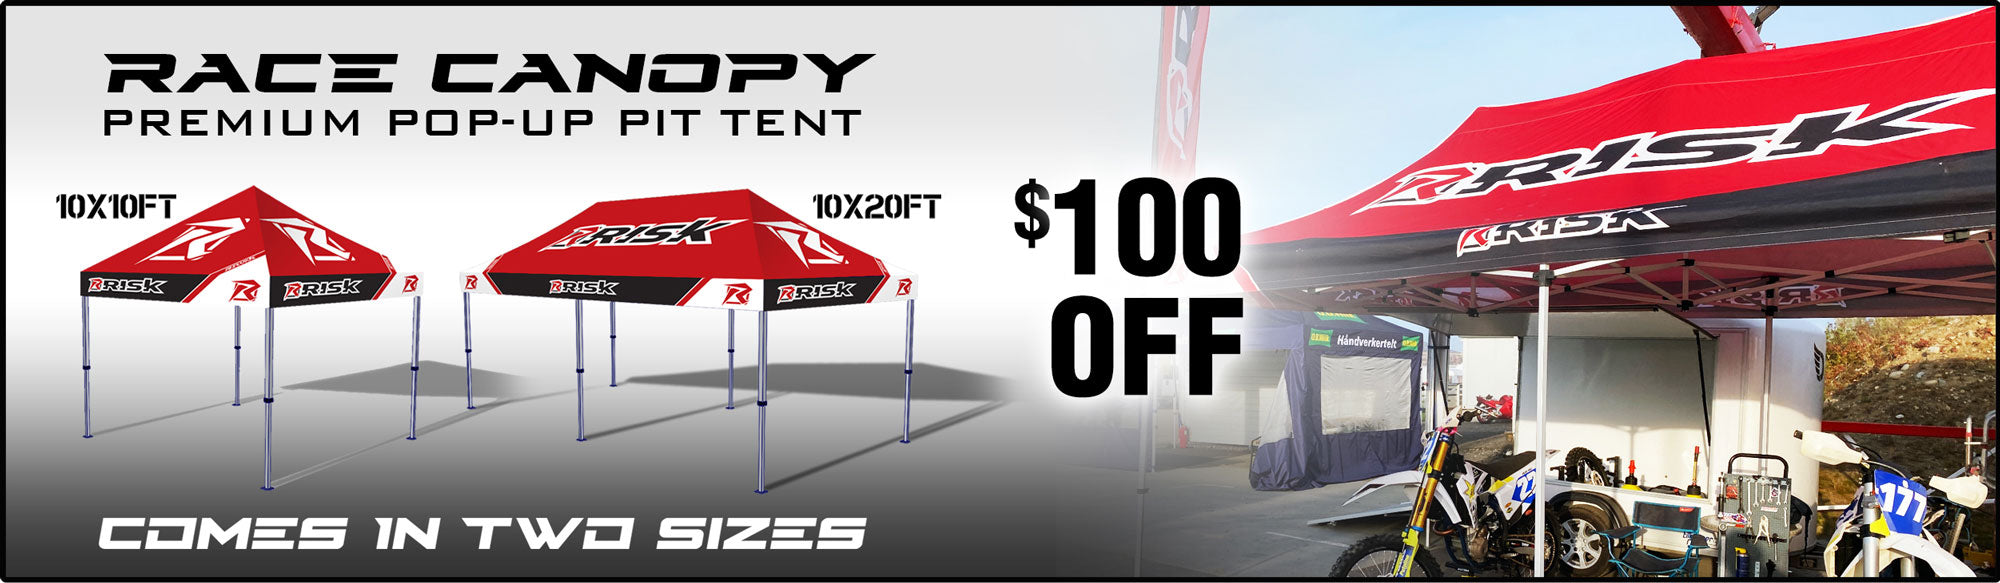 Risk Racing Premium Canopy Tents